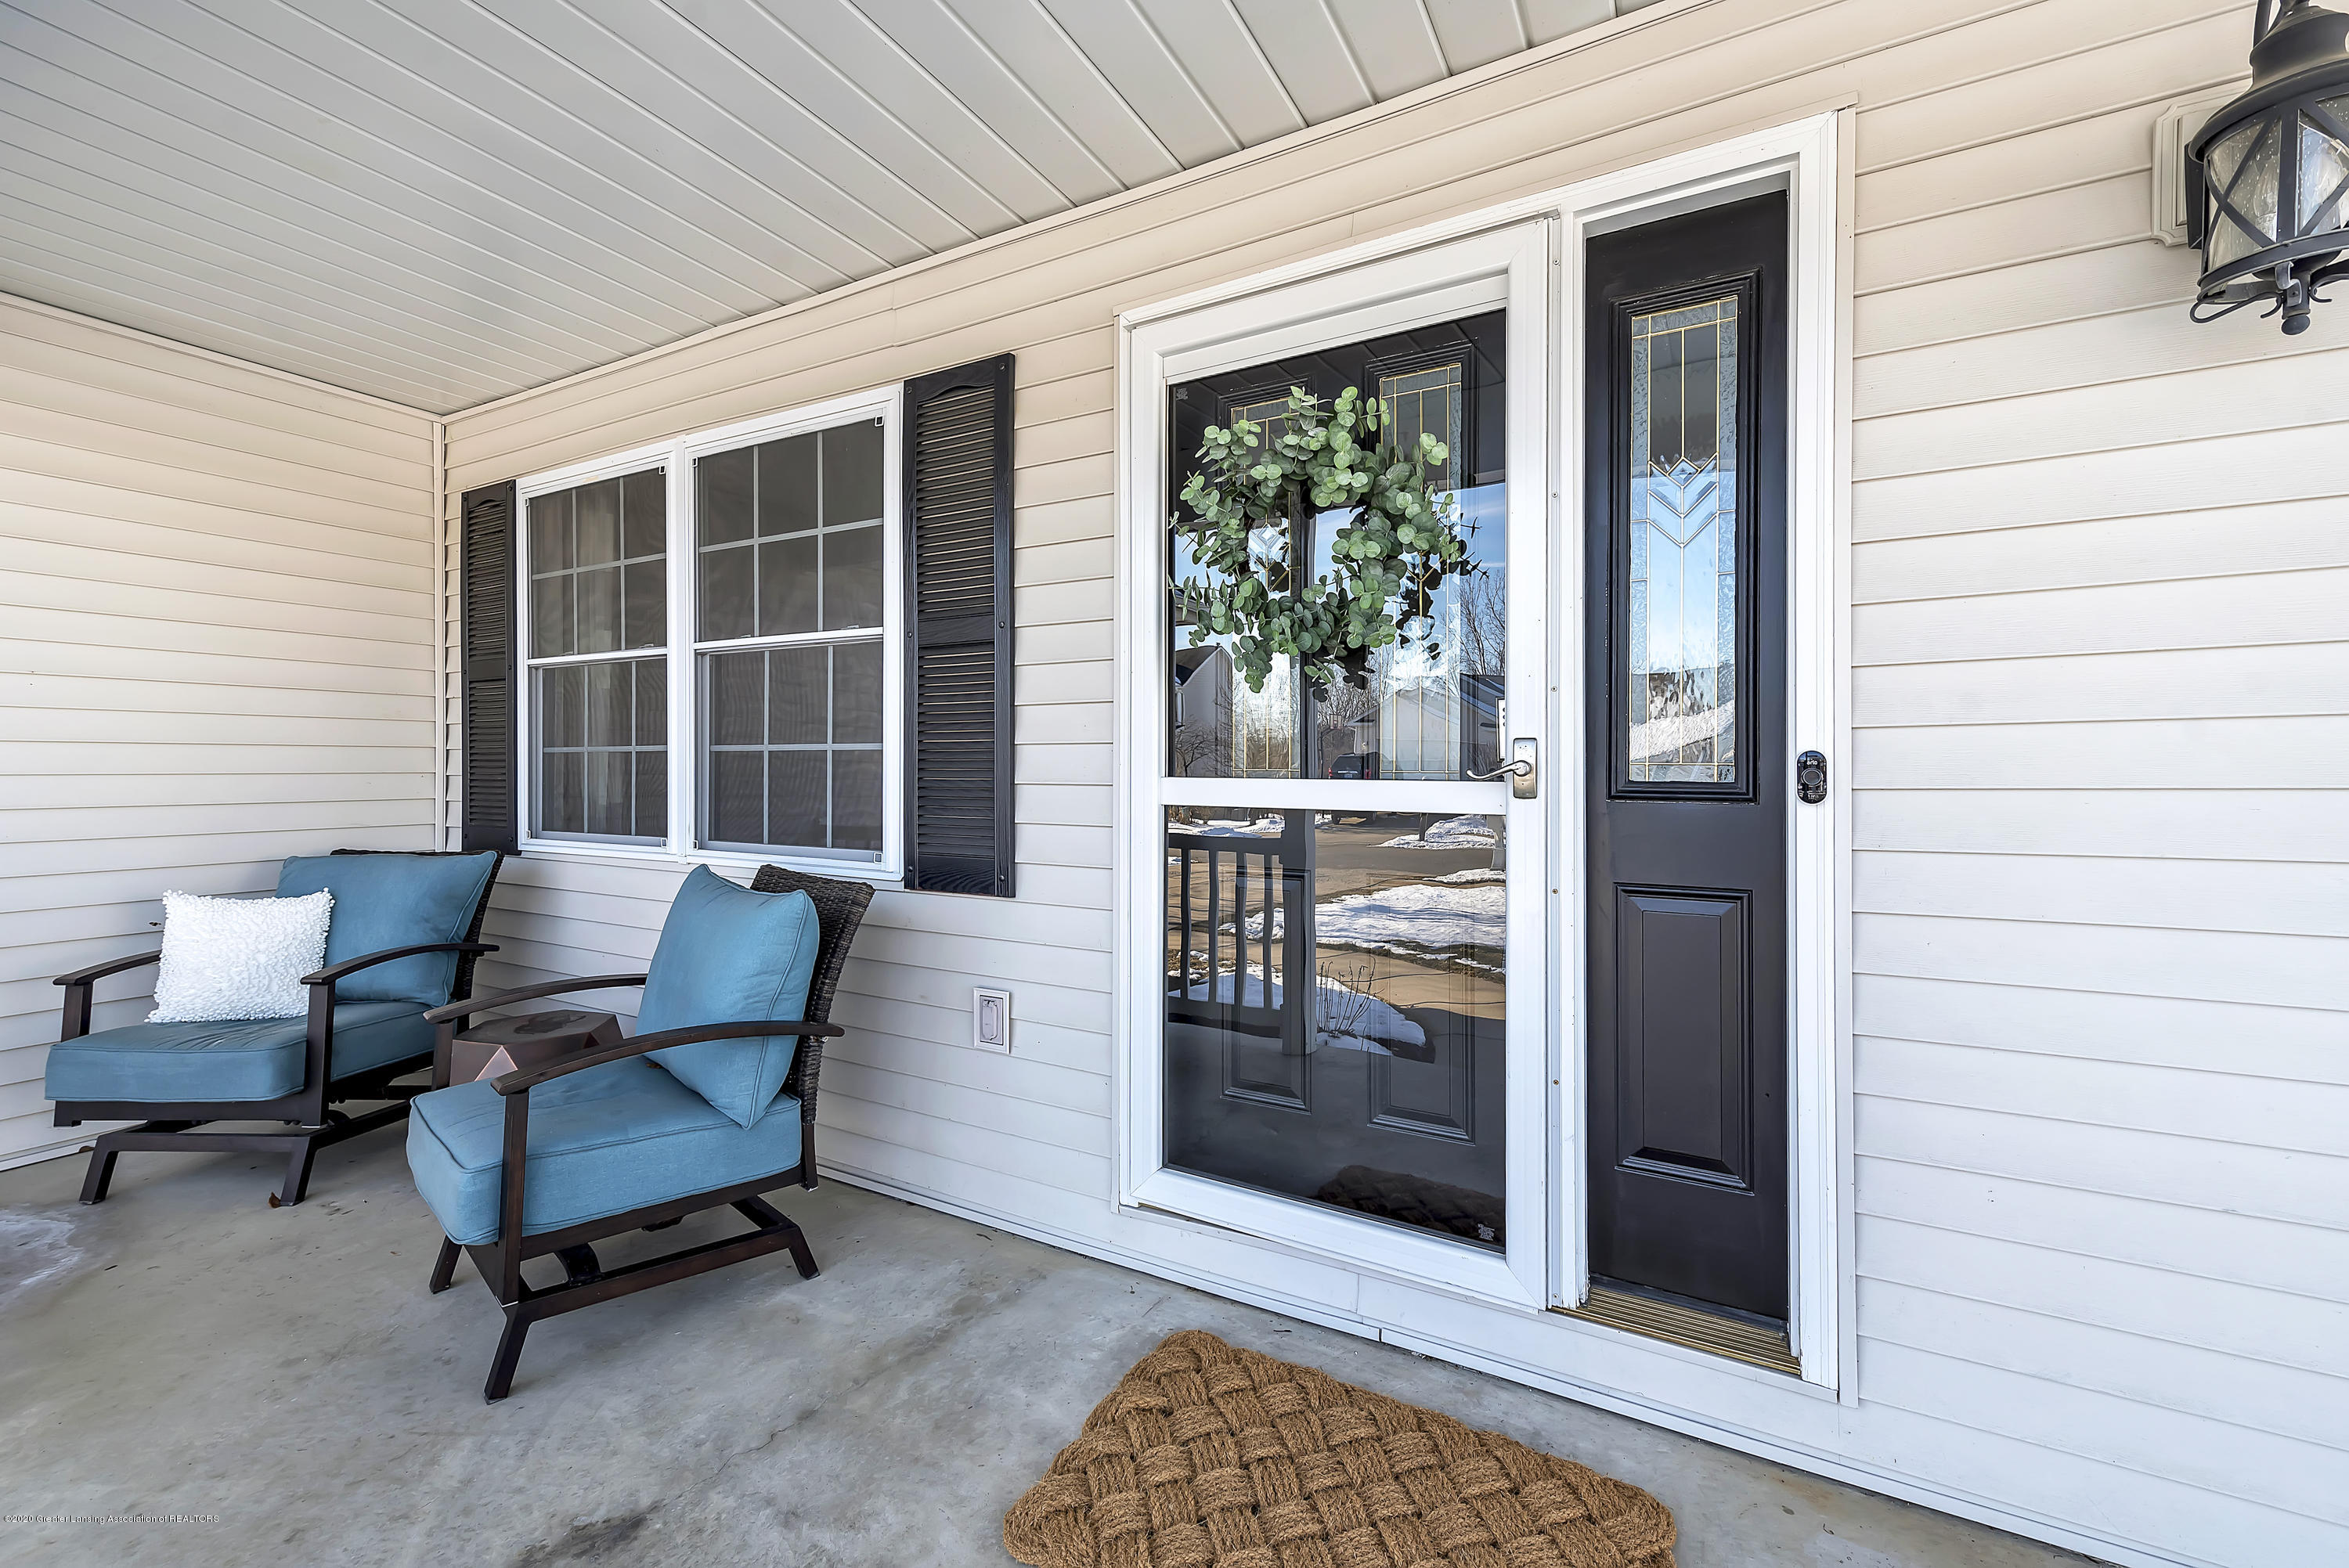 5206 Witherspoon Way - 5206-Witherspoon-Way-WindowStill-Real-Es - 6